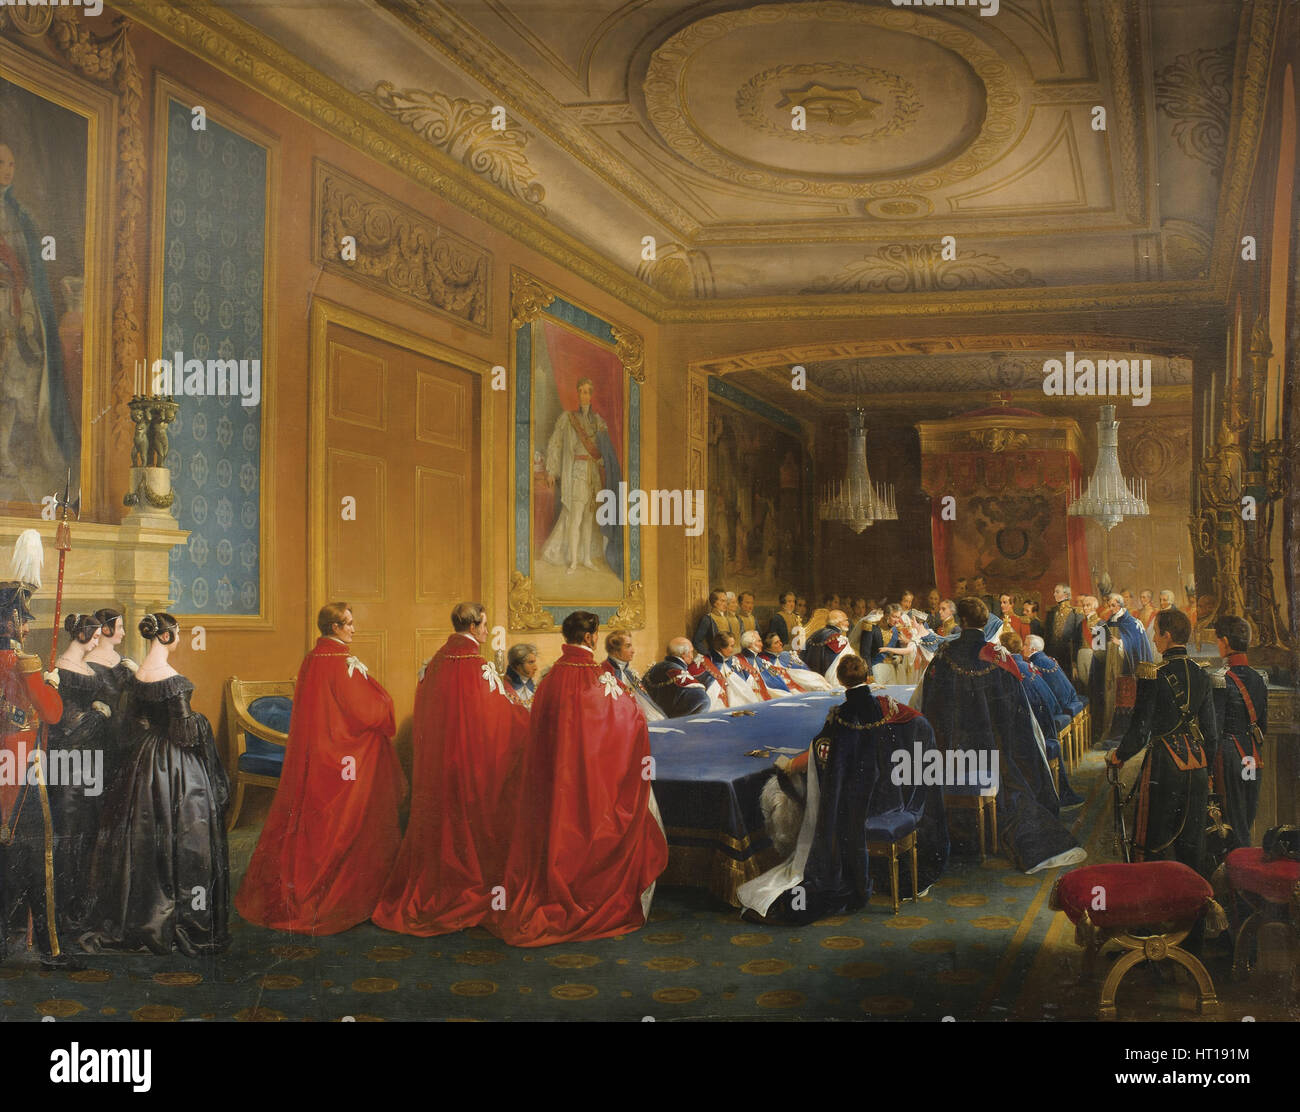 Louis-Philippe receiving the Order of the Garter from the hands of a young Queen Victoria, 1844. Artist: Gosse, - Stock Image